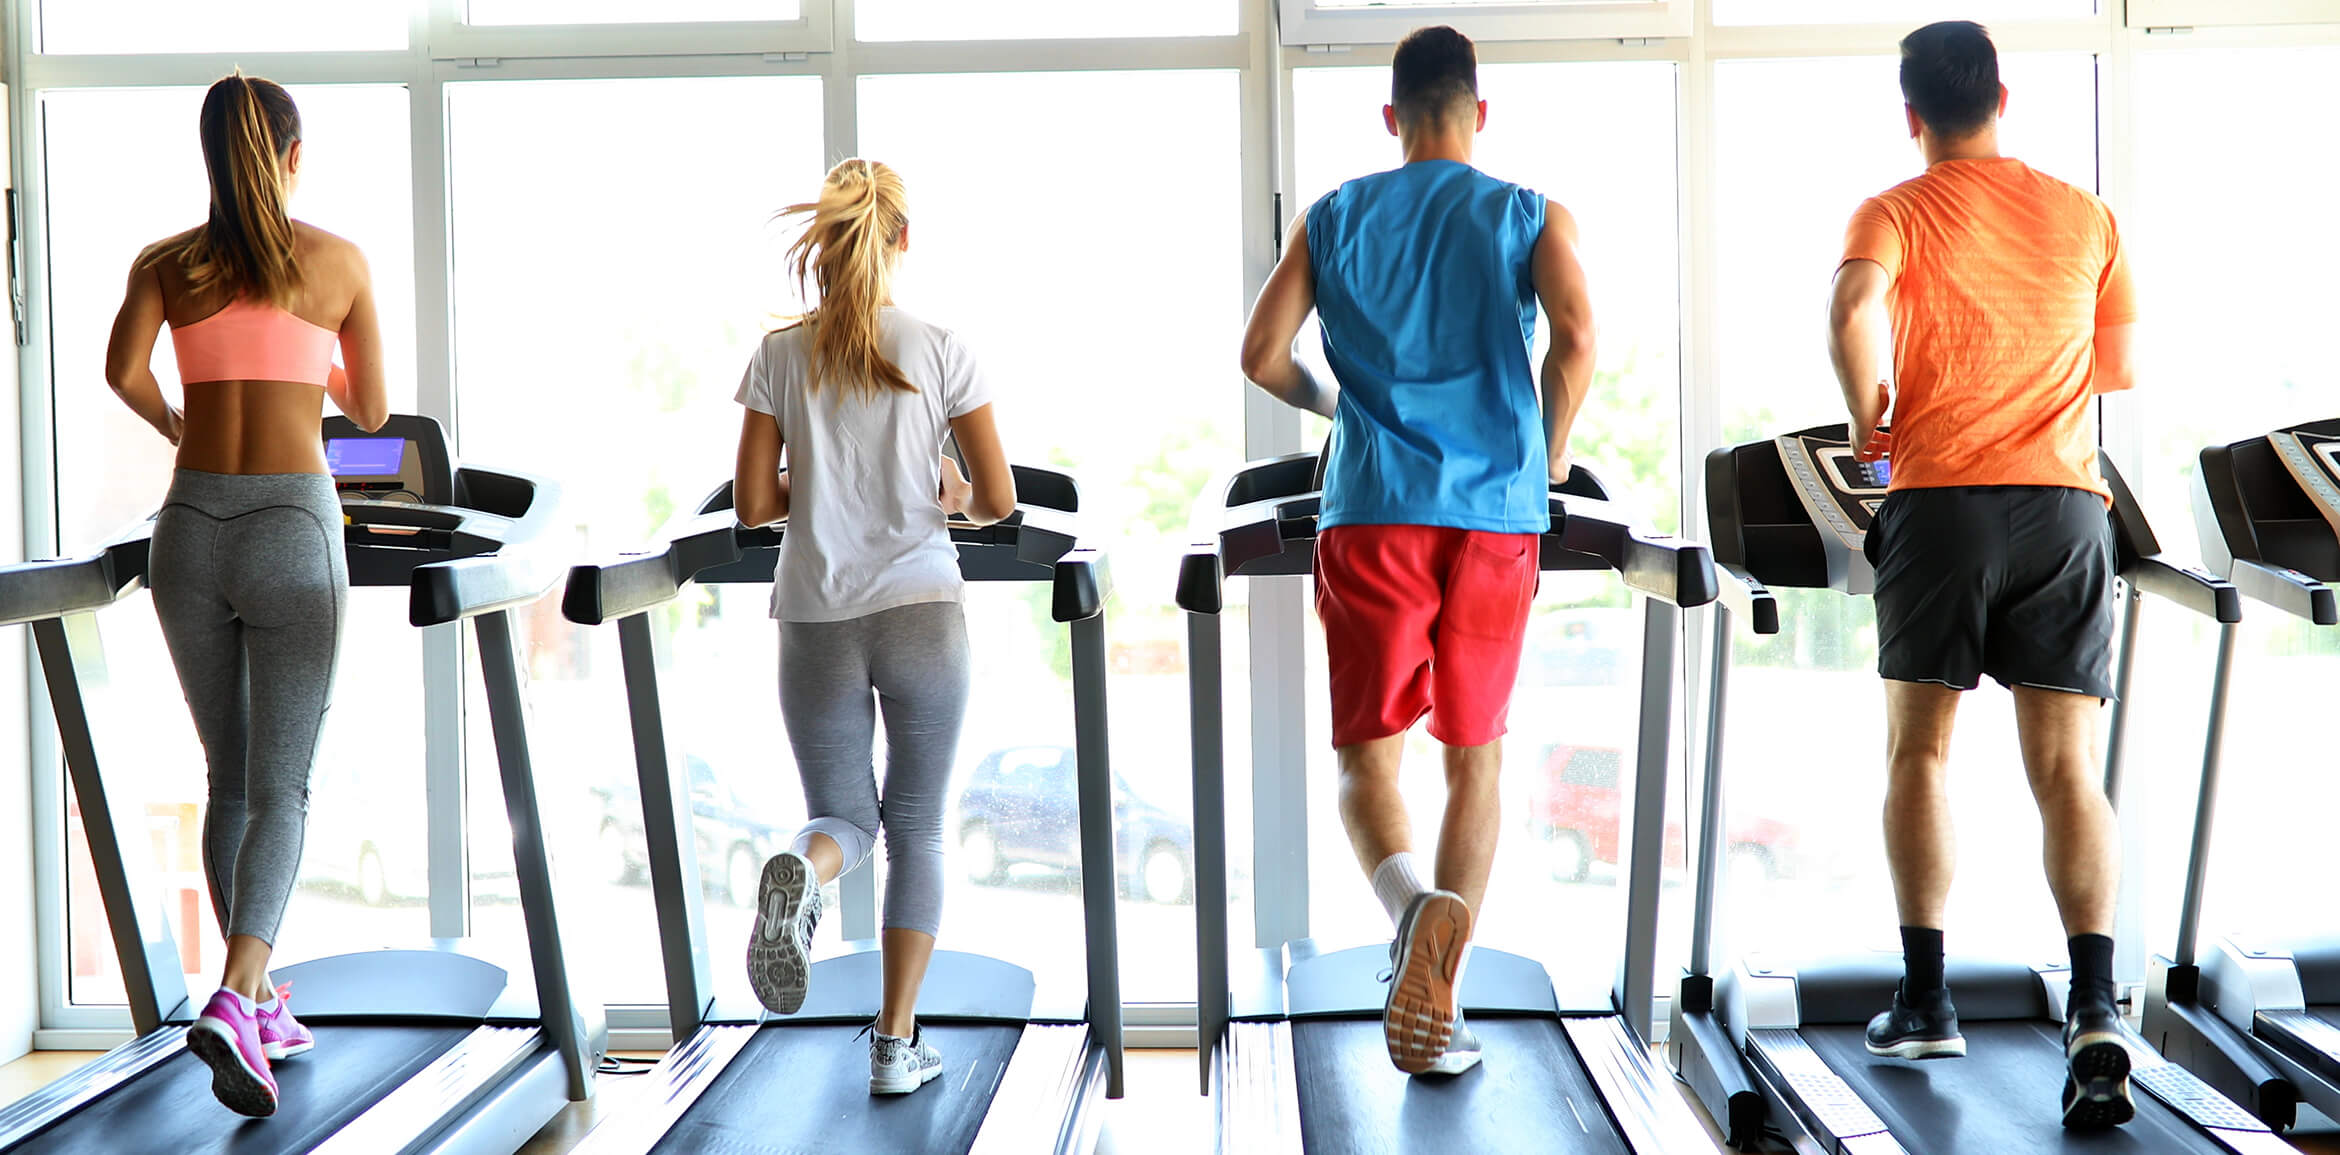 People working out on treadmill